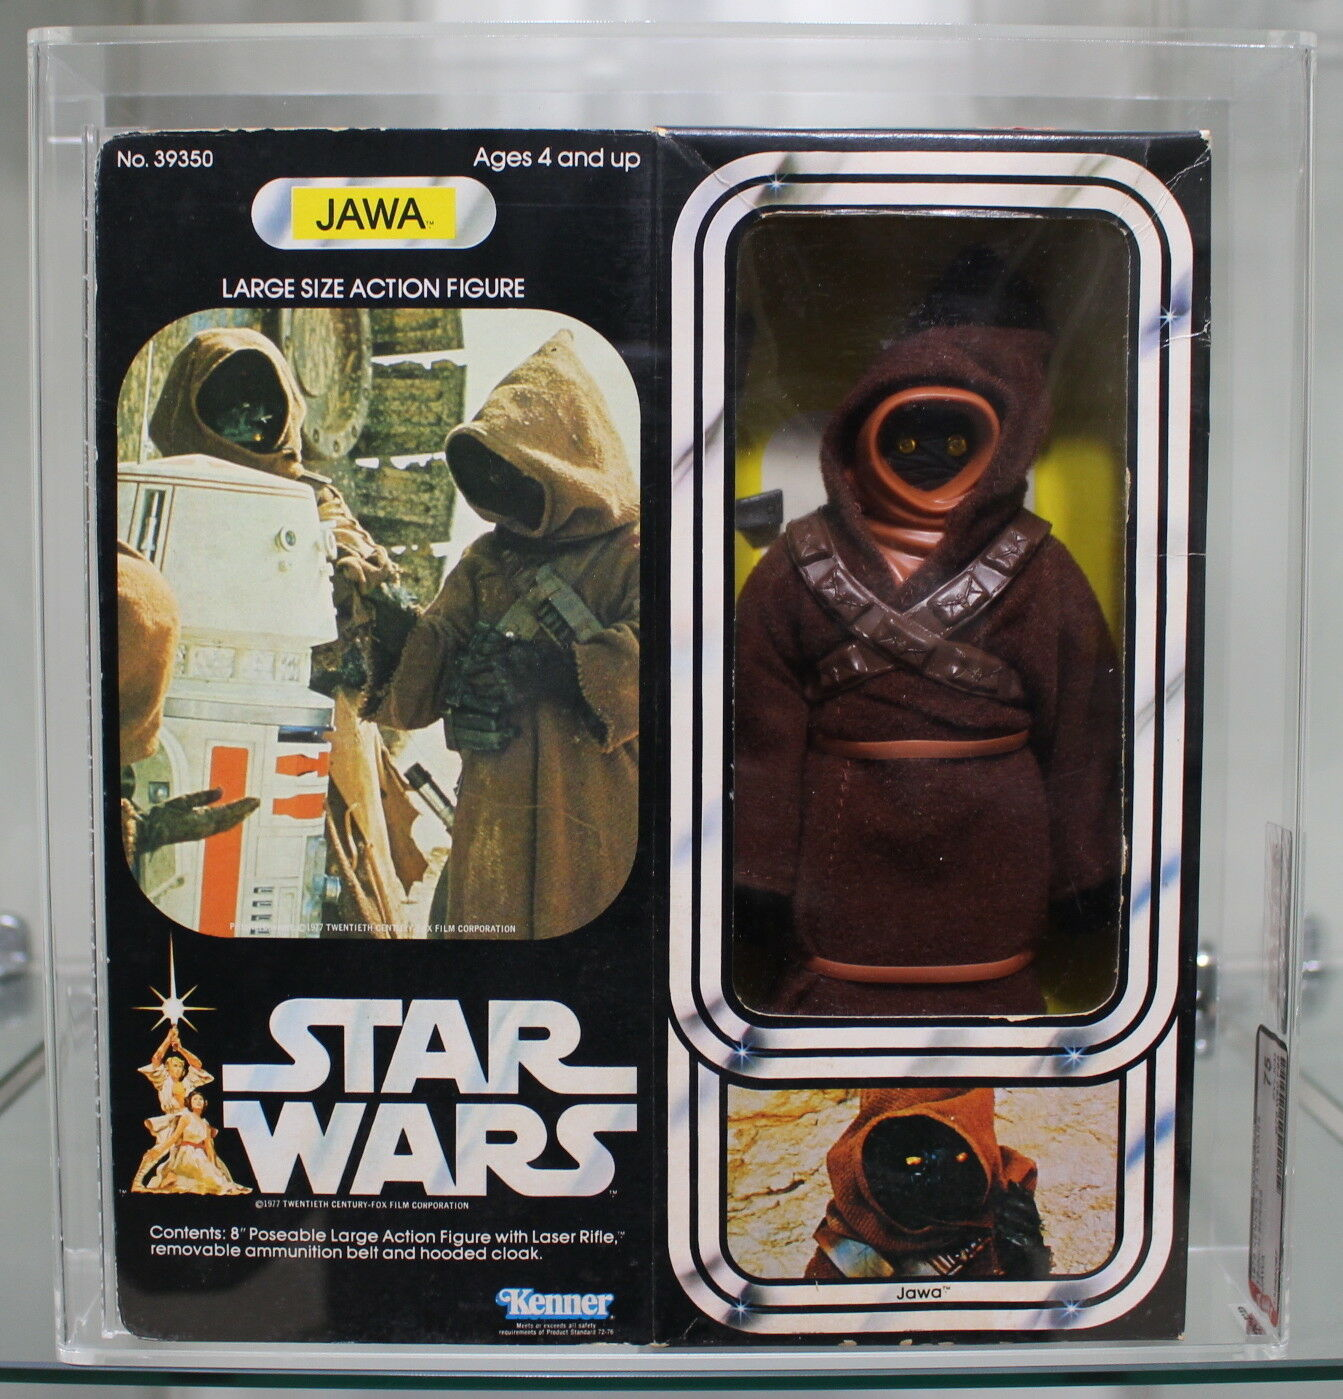 1979 VINTAGE STAR WARS 8  INCH LARGE SIZE ACTION FIGURE JAWA MISB AFA 75